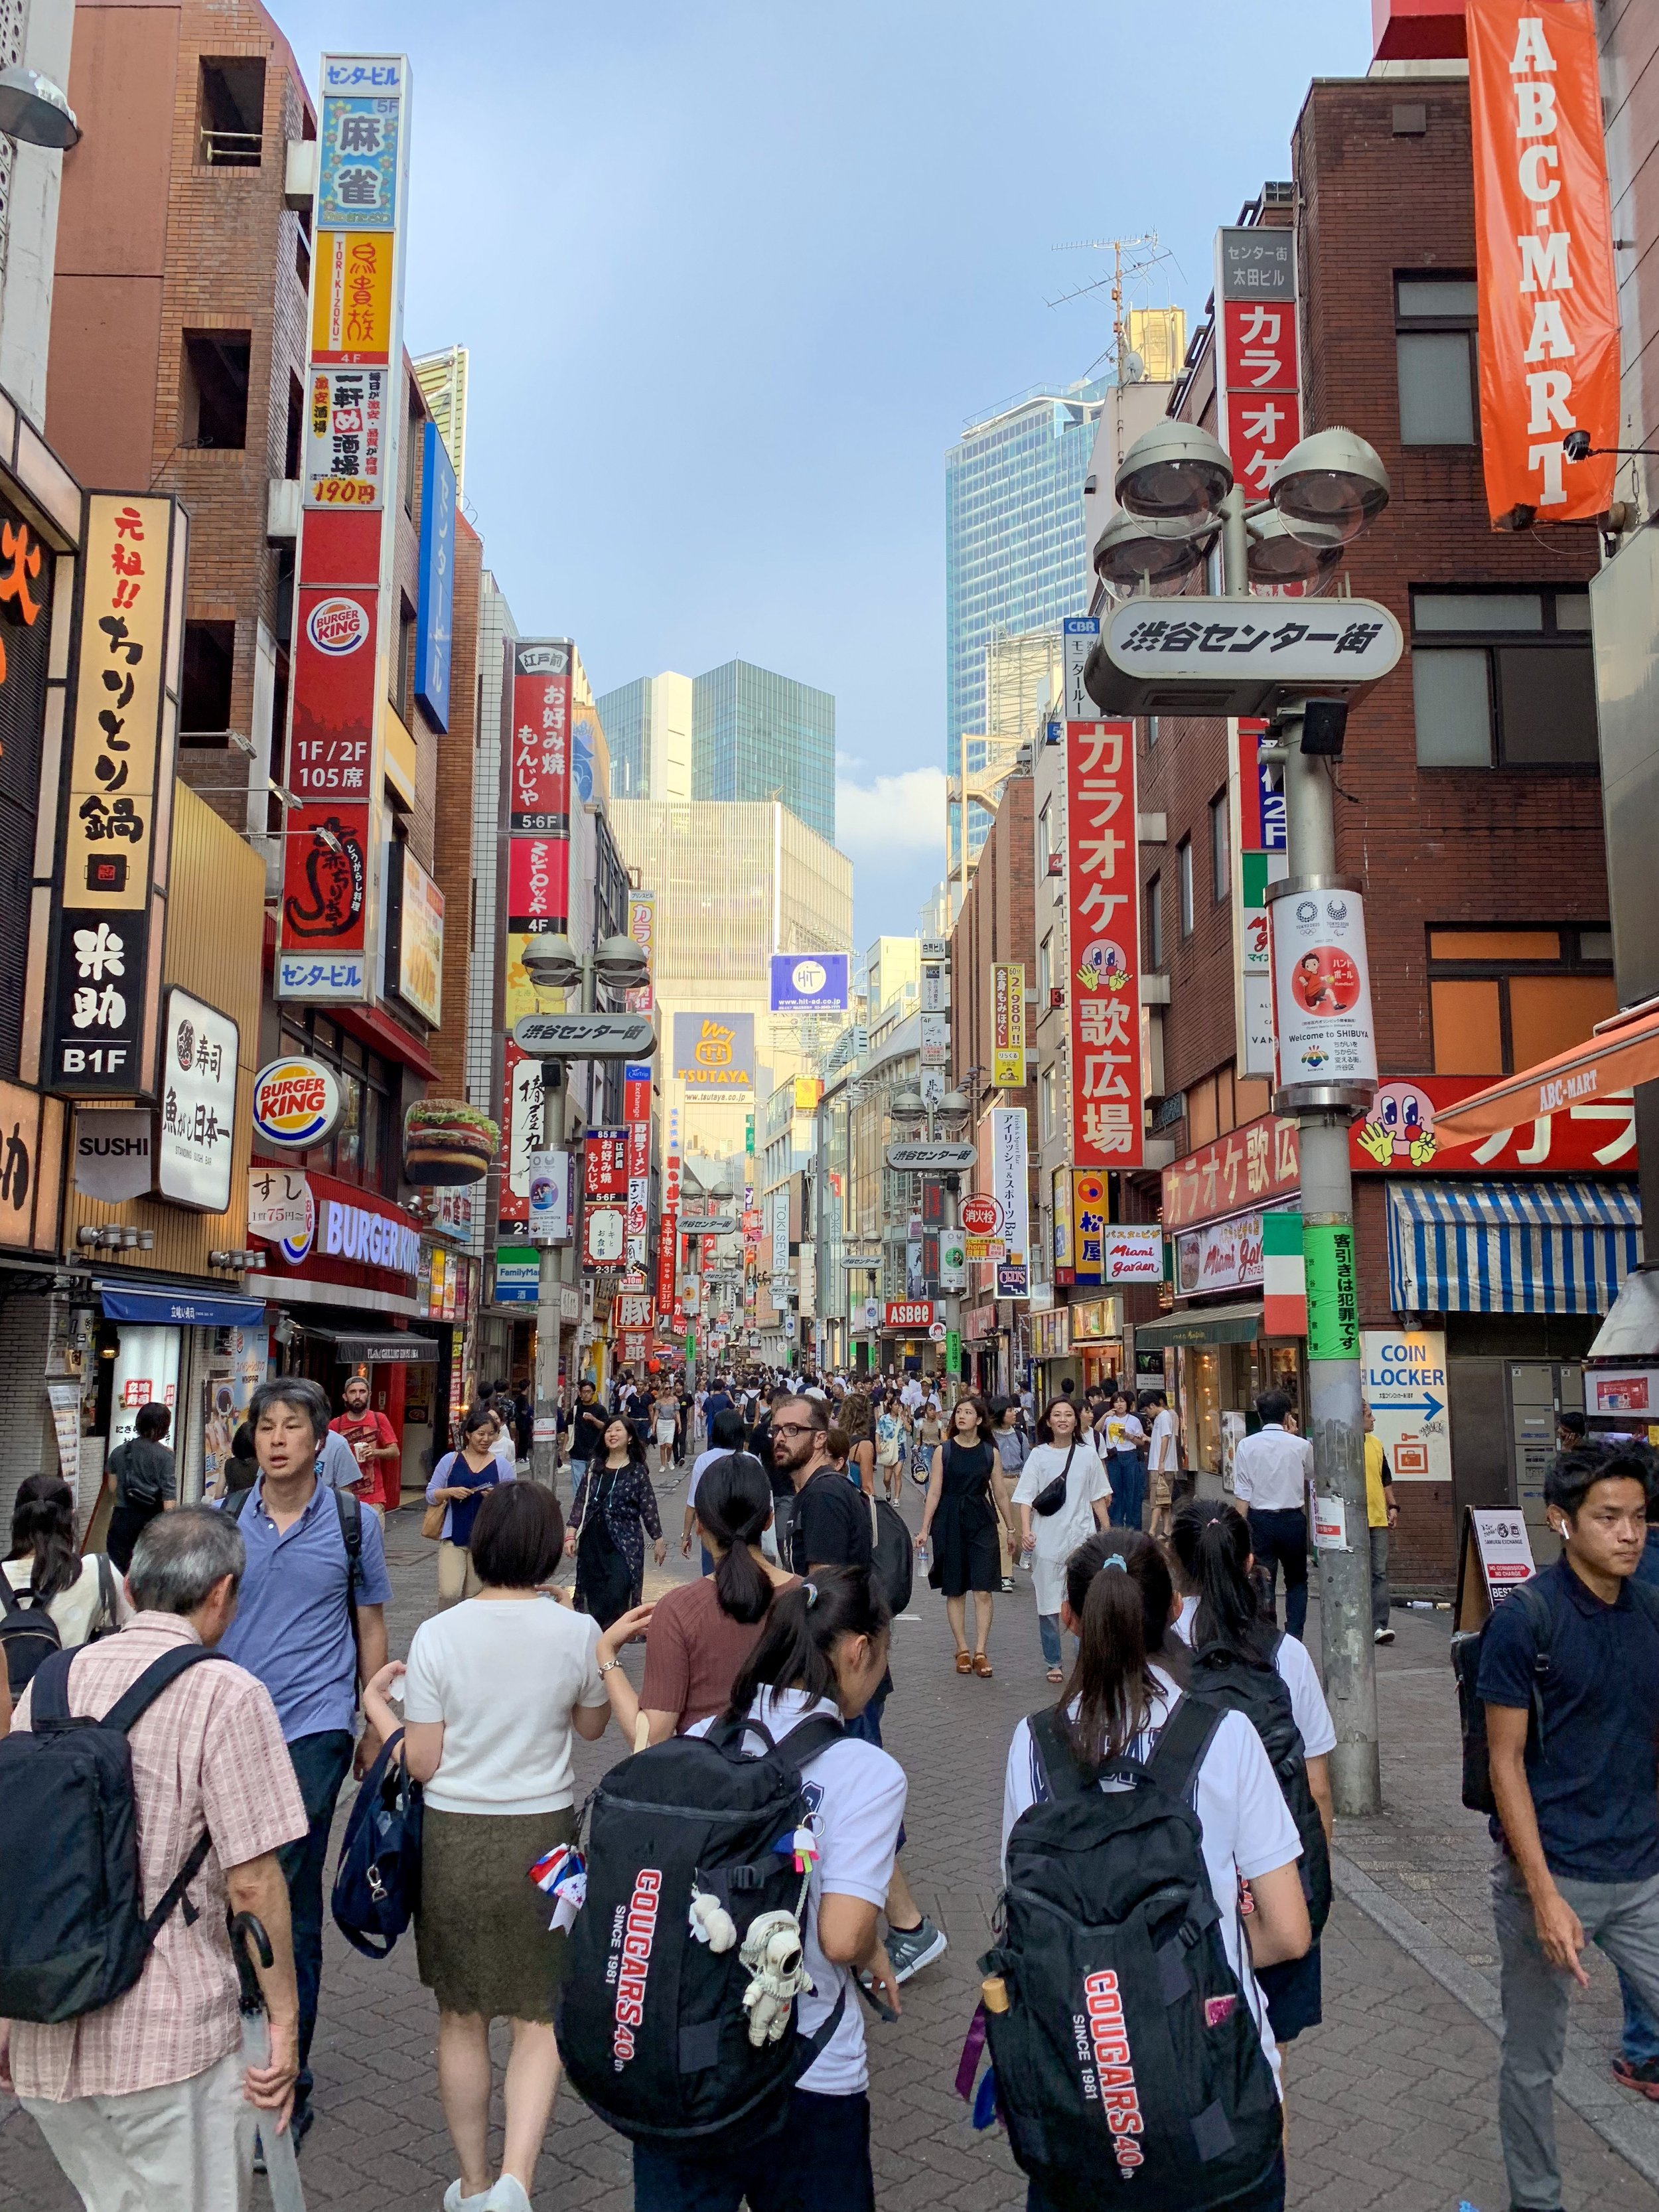 Even Tokyo's busiest areas are void of litter and look immaculate.